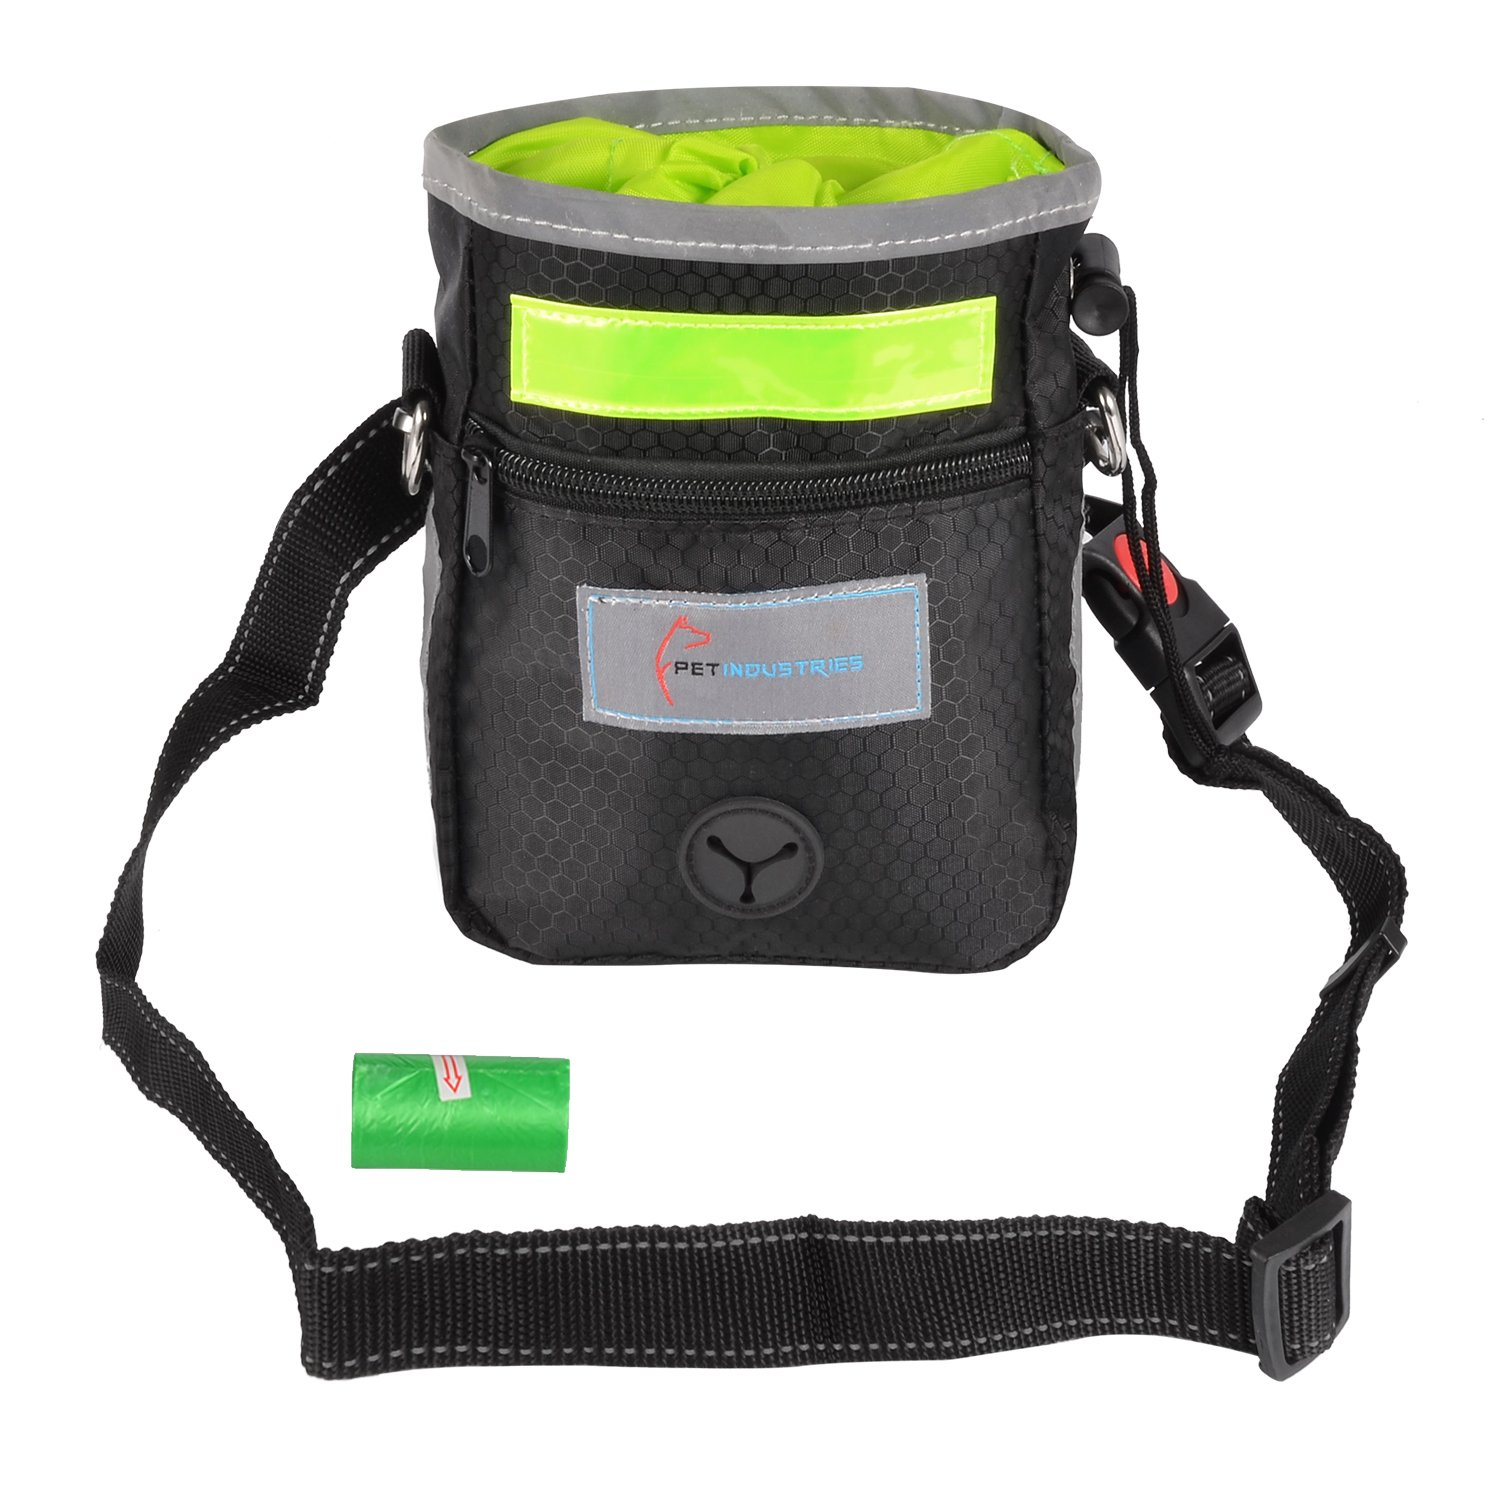 Pet Industries Dog Treat Training Pouch with Poop Bag Dispenser, Waist & Shoulder Reflective Strap, 2 Zippered Pockets and Quick-Access Opening [Premium Edition] (Leaf Green)